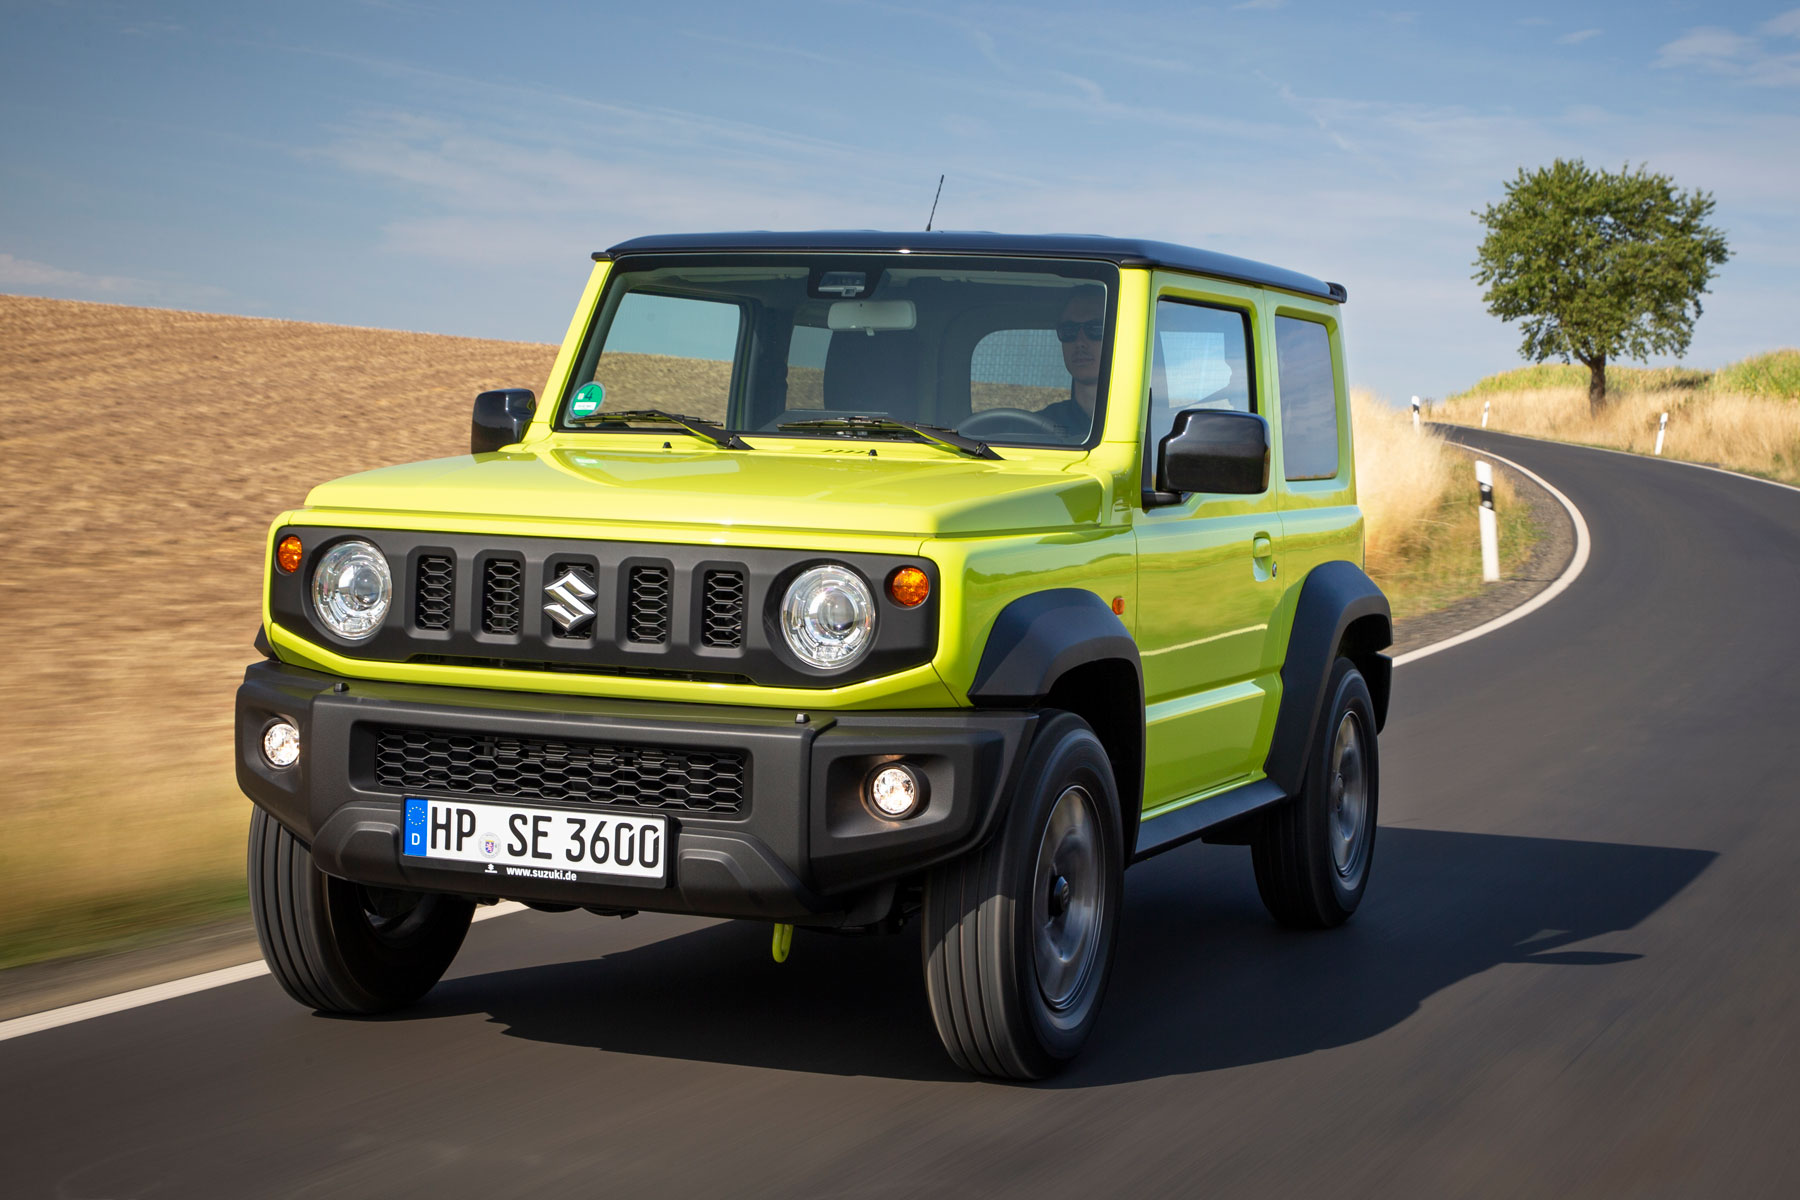 95 2019 suzuki jimny review and they called it puppy love 2019 suzuki jimny uk pricing. Black Bedroom Furniture Sets. Home Design Ideas